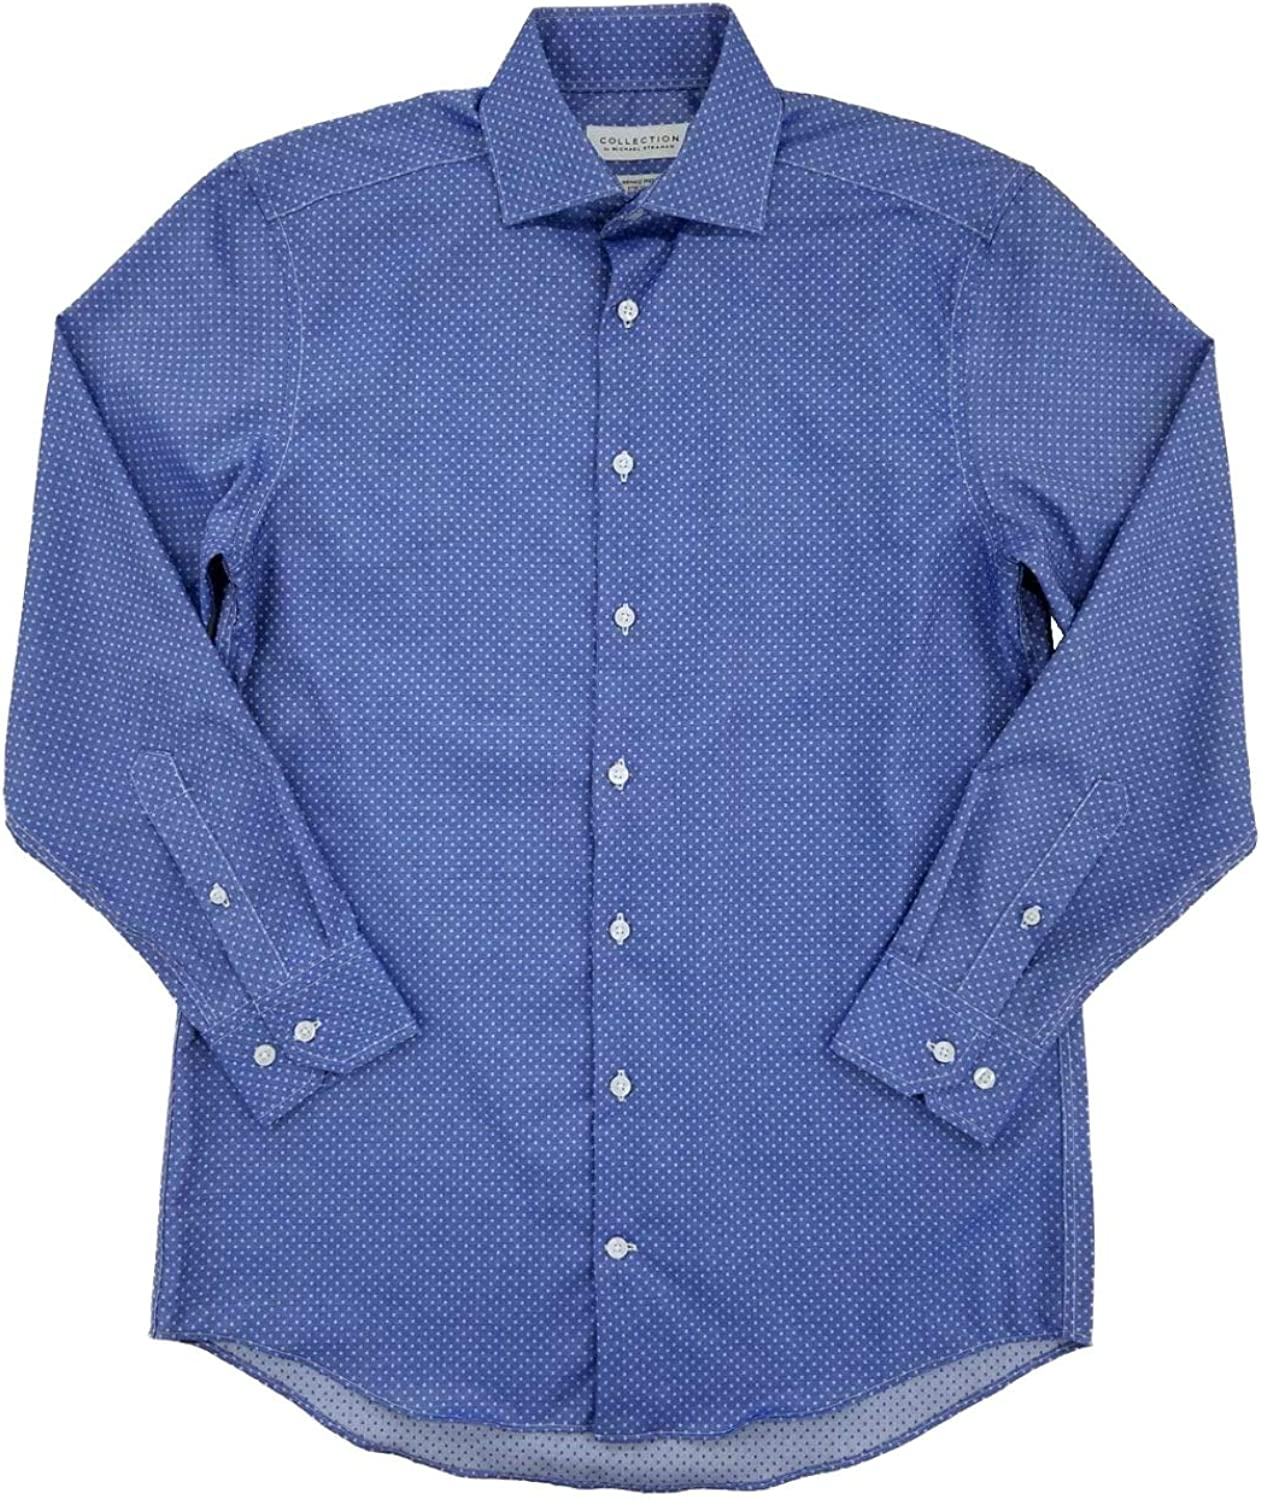 Details about  /NWT COLLECTION by MICHAEL STRAHAN LONG SLEEVE DRESS SHIRT Blue Check Reg